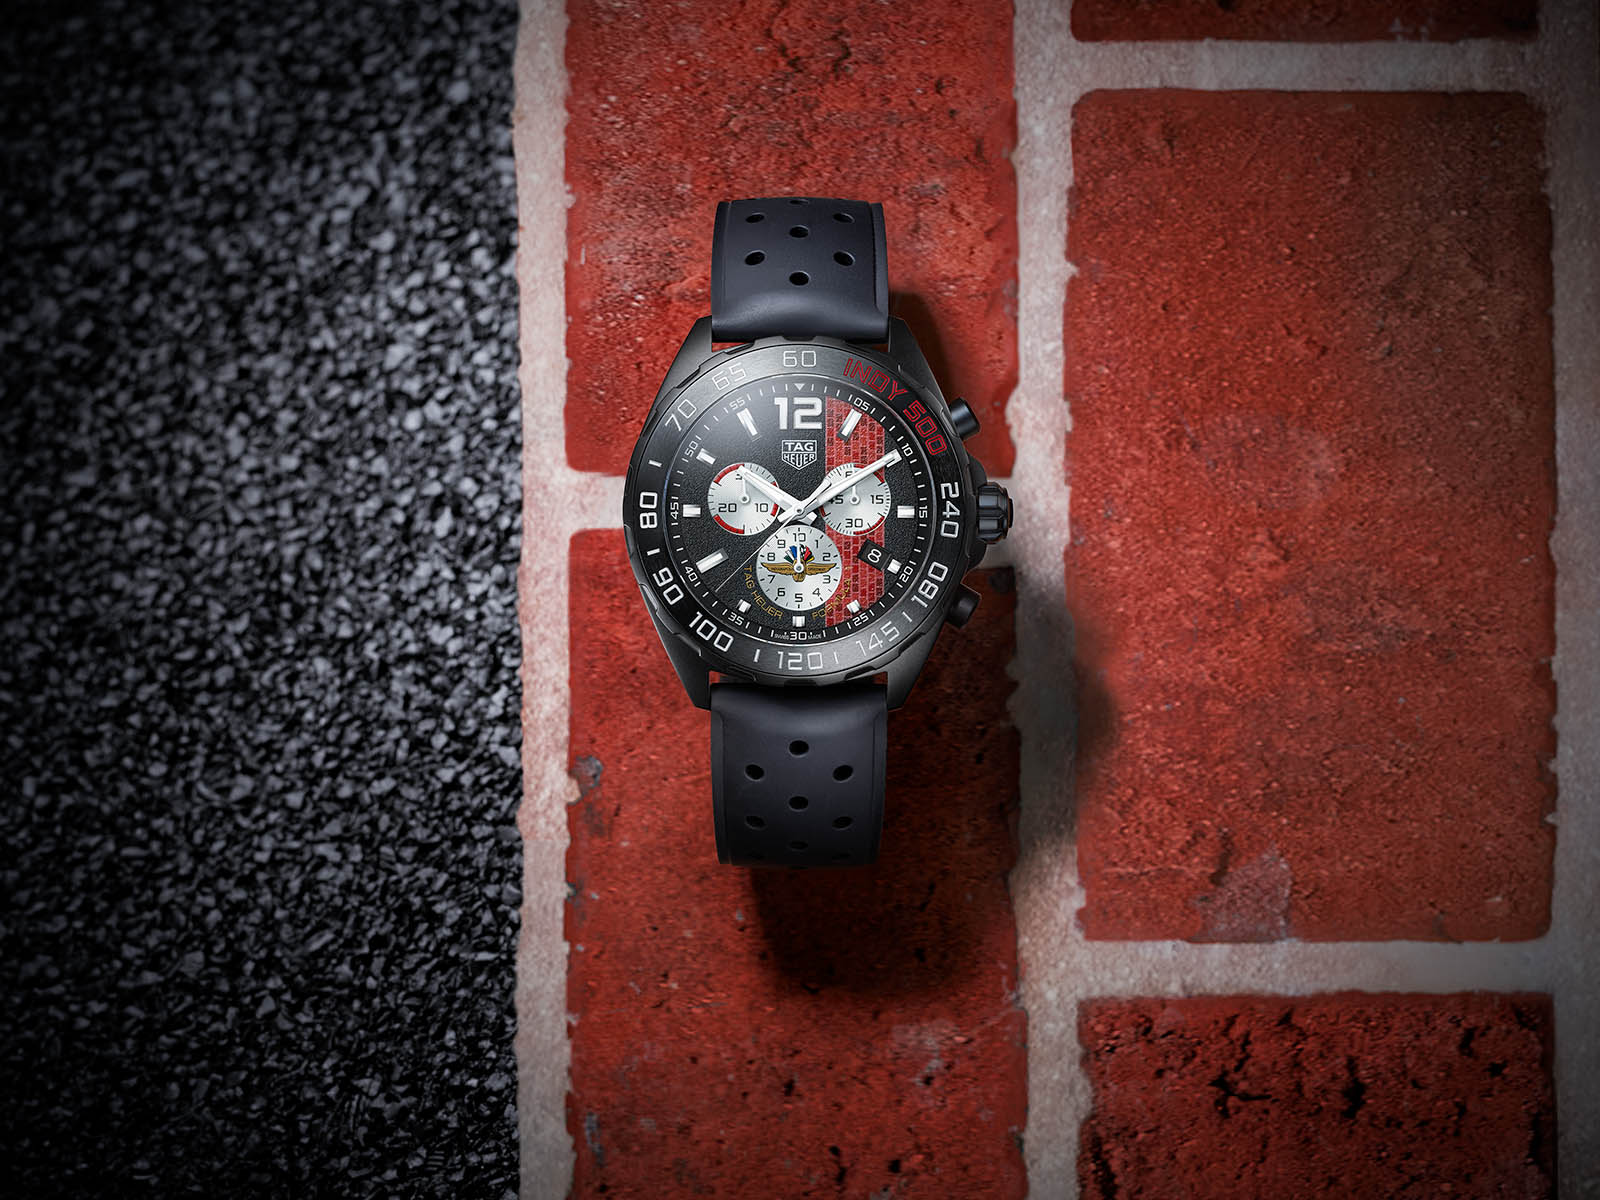 caz101ad-ft8024-tag-heuer-formula-1-indy-500-2020-special-edition-2.jpg